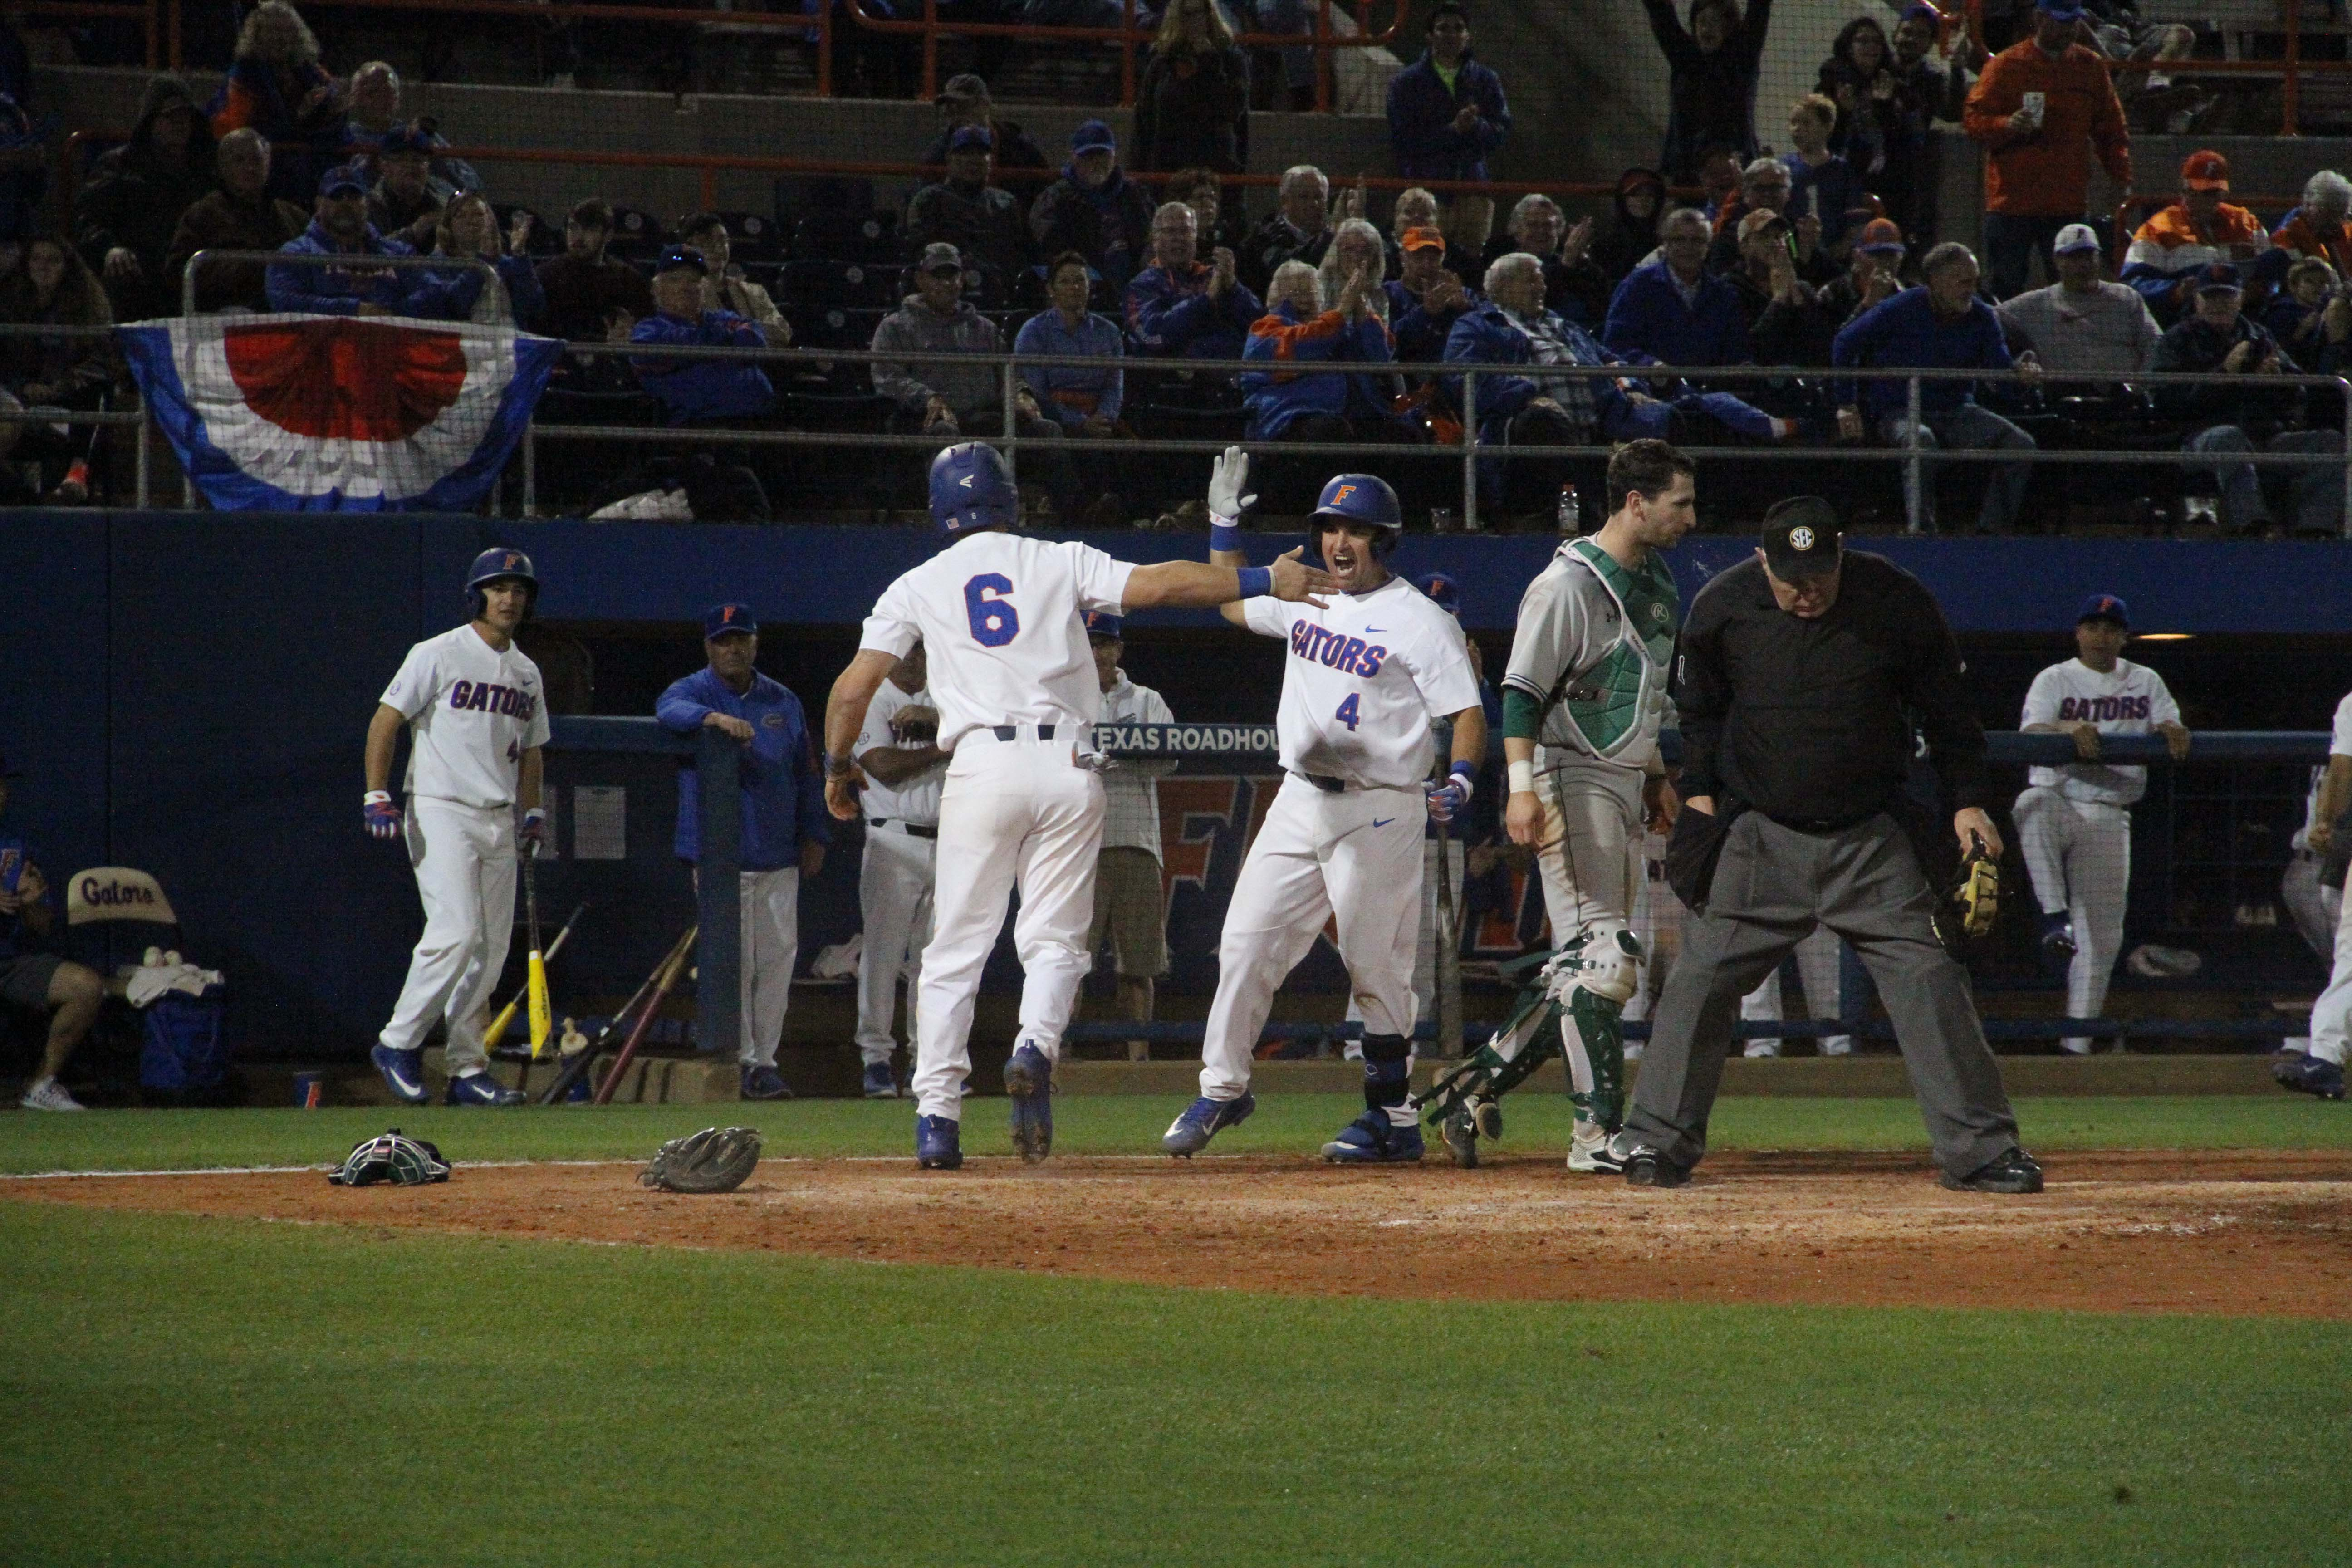 b8df8f92186 Florida Baseball Shuts Out Rival Florida State - ESPN 98.1 FM - 850 AM WRUF